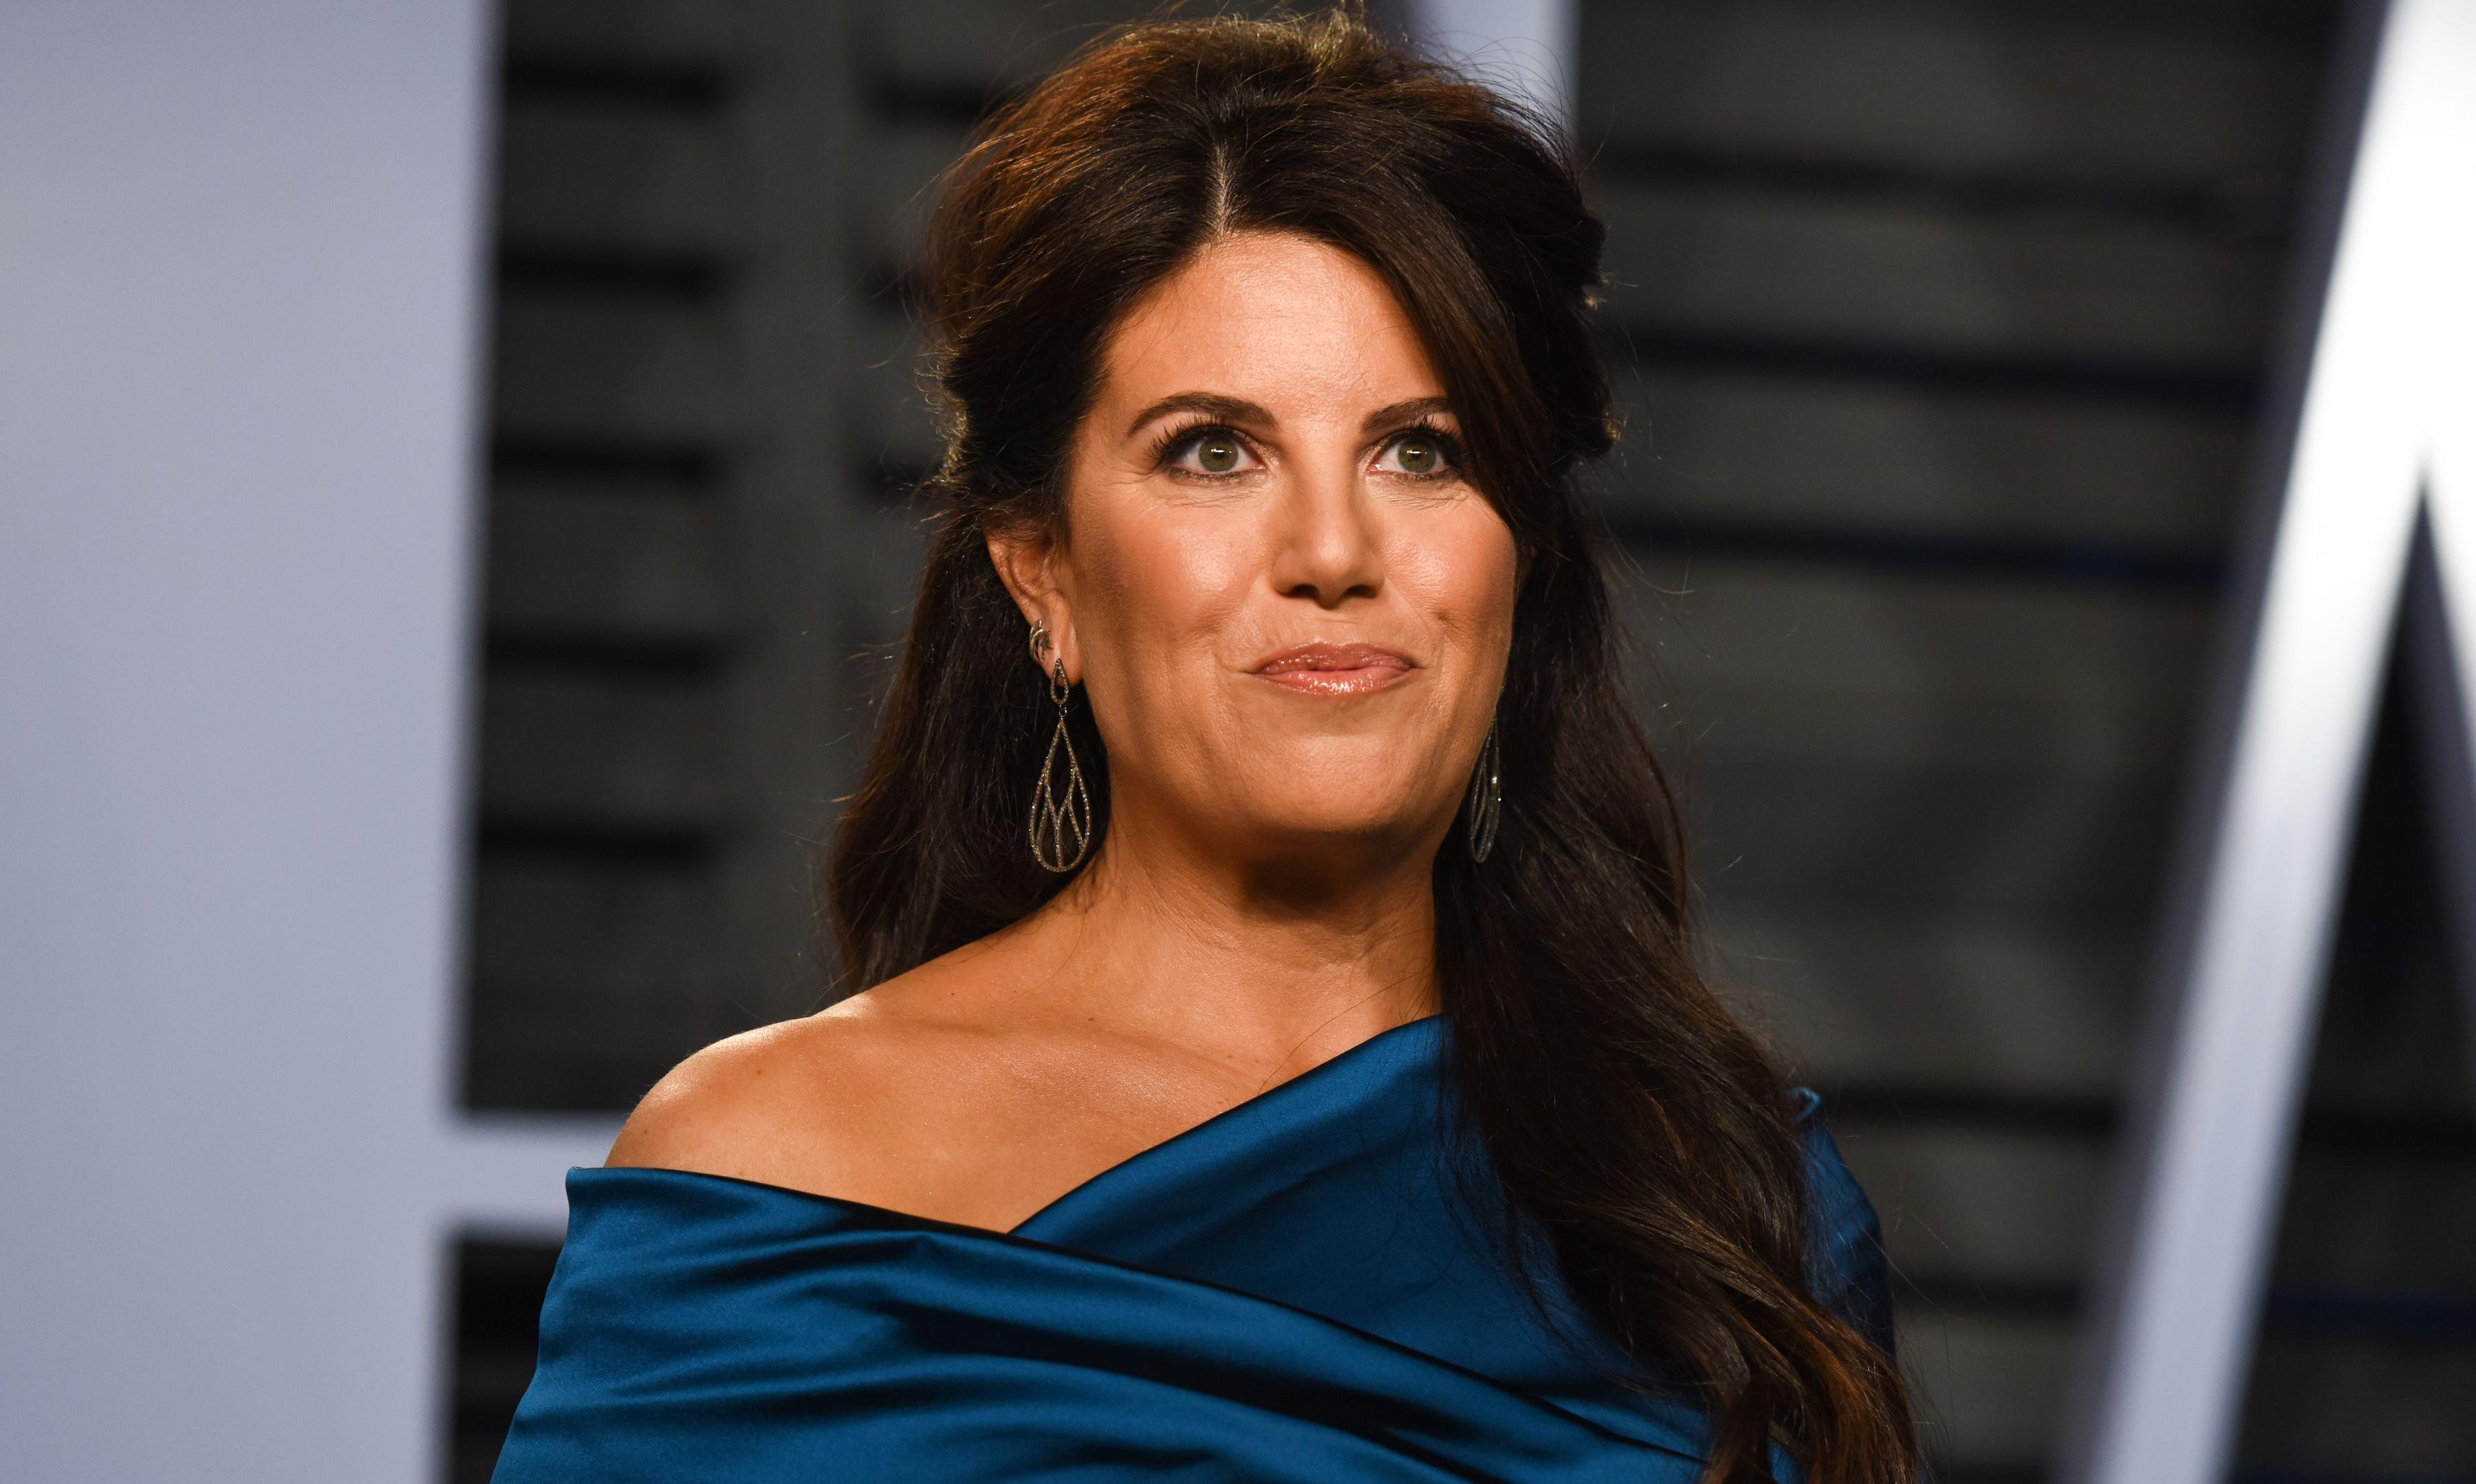 Monica Lewinsky revisits scandal on her own terms in new docuseries